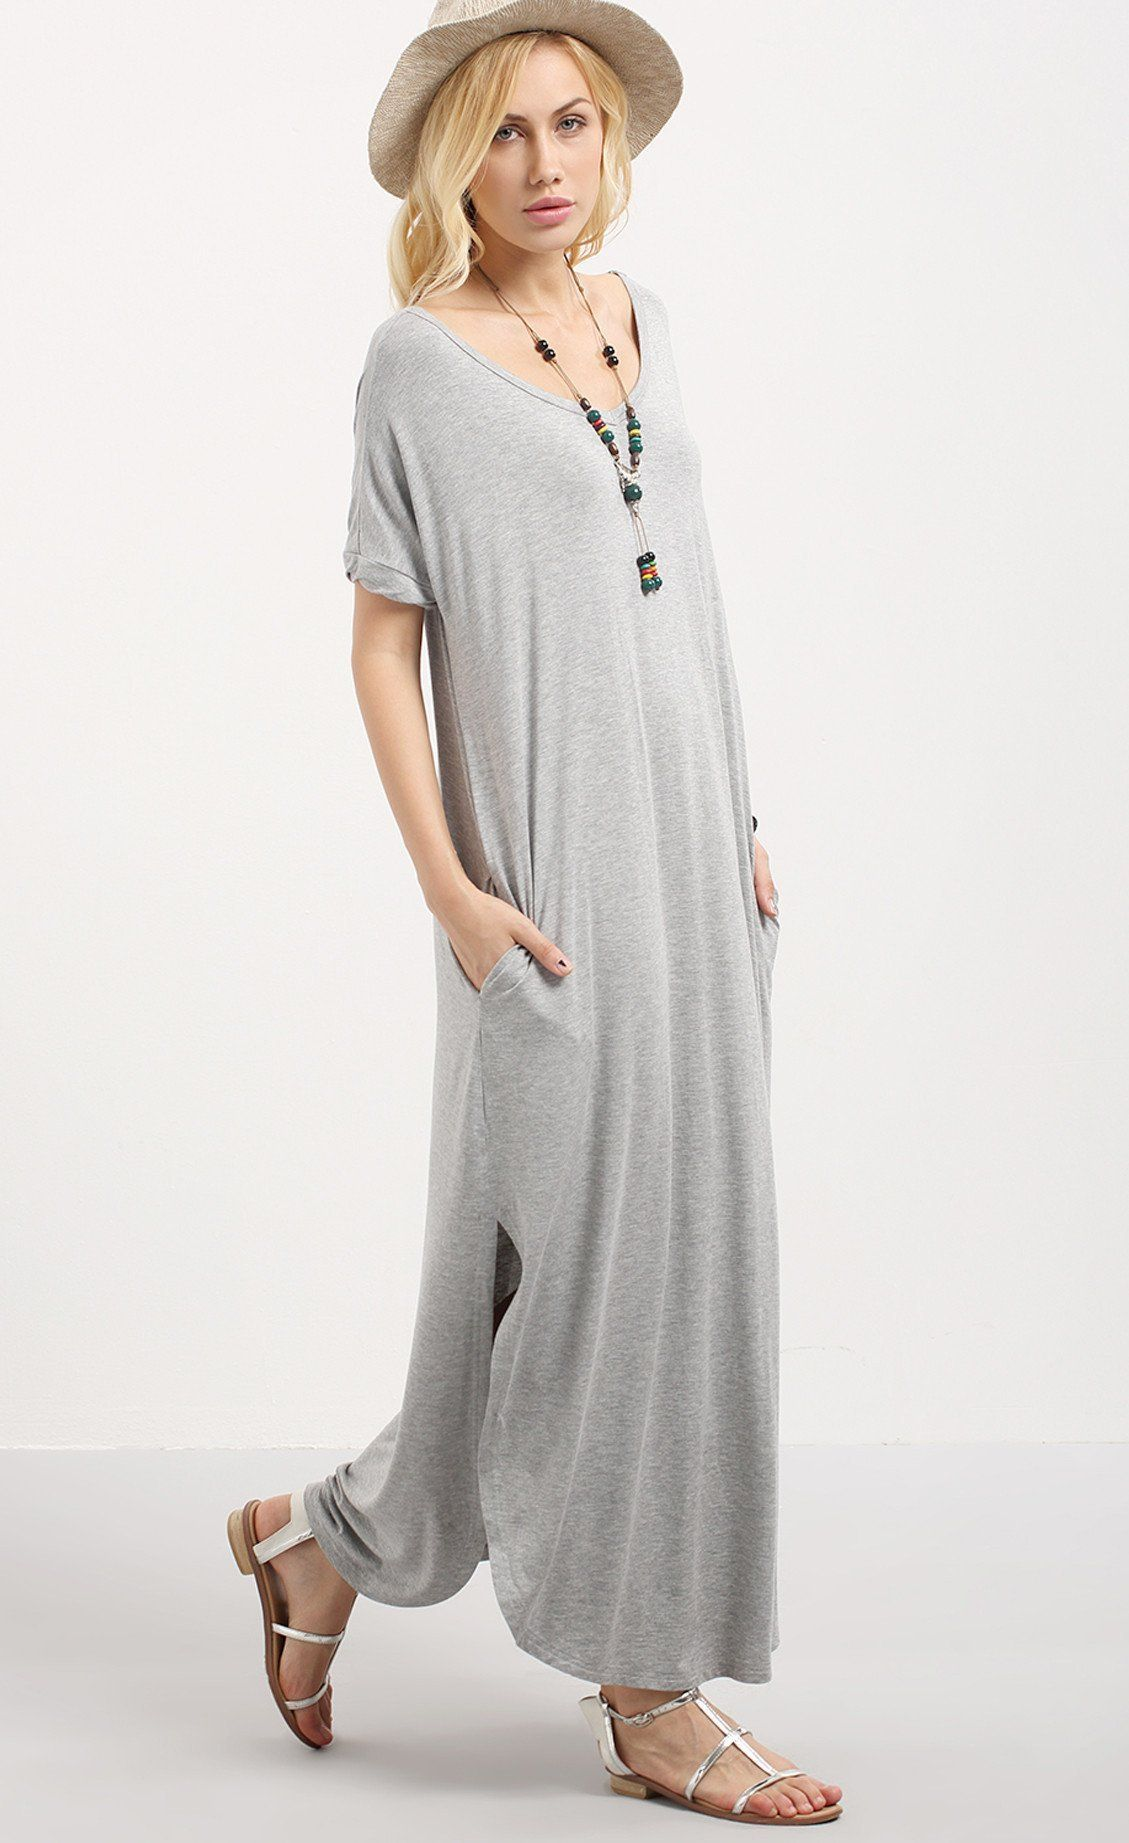 59f60bb4b823c Abigail Grey T-Shirt Maxi Dress | t-shirt dress | Dresses, Grey t ...